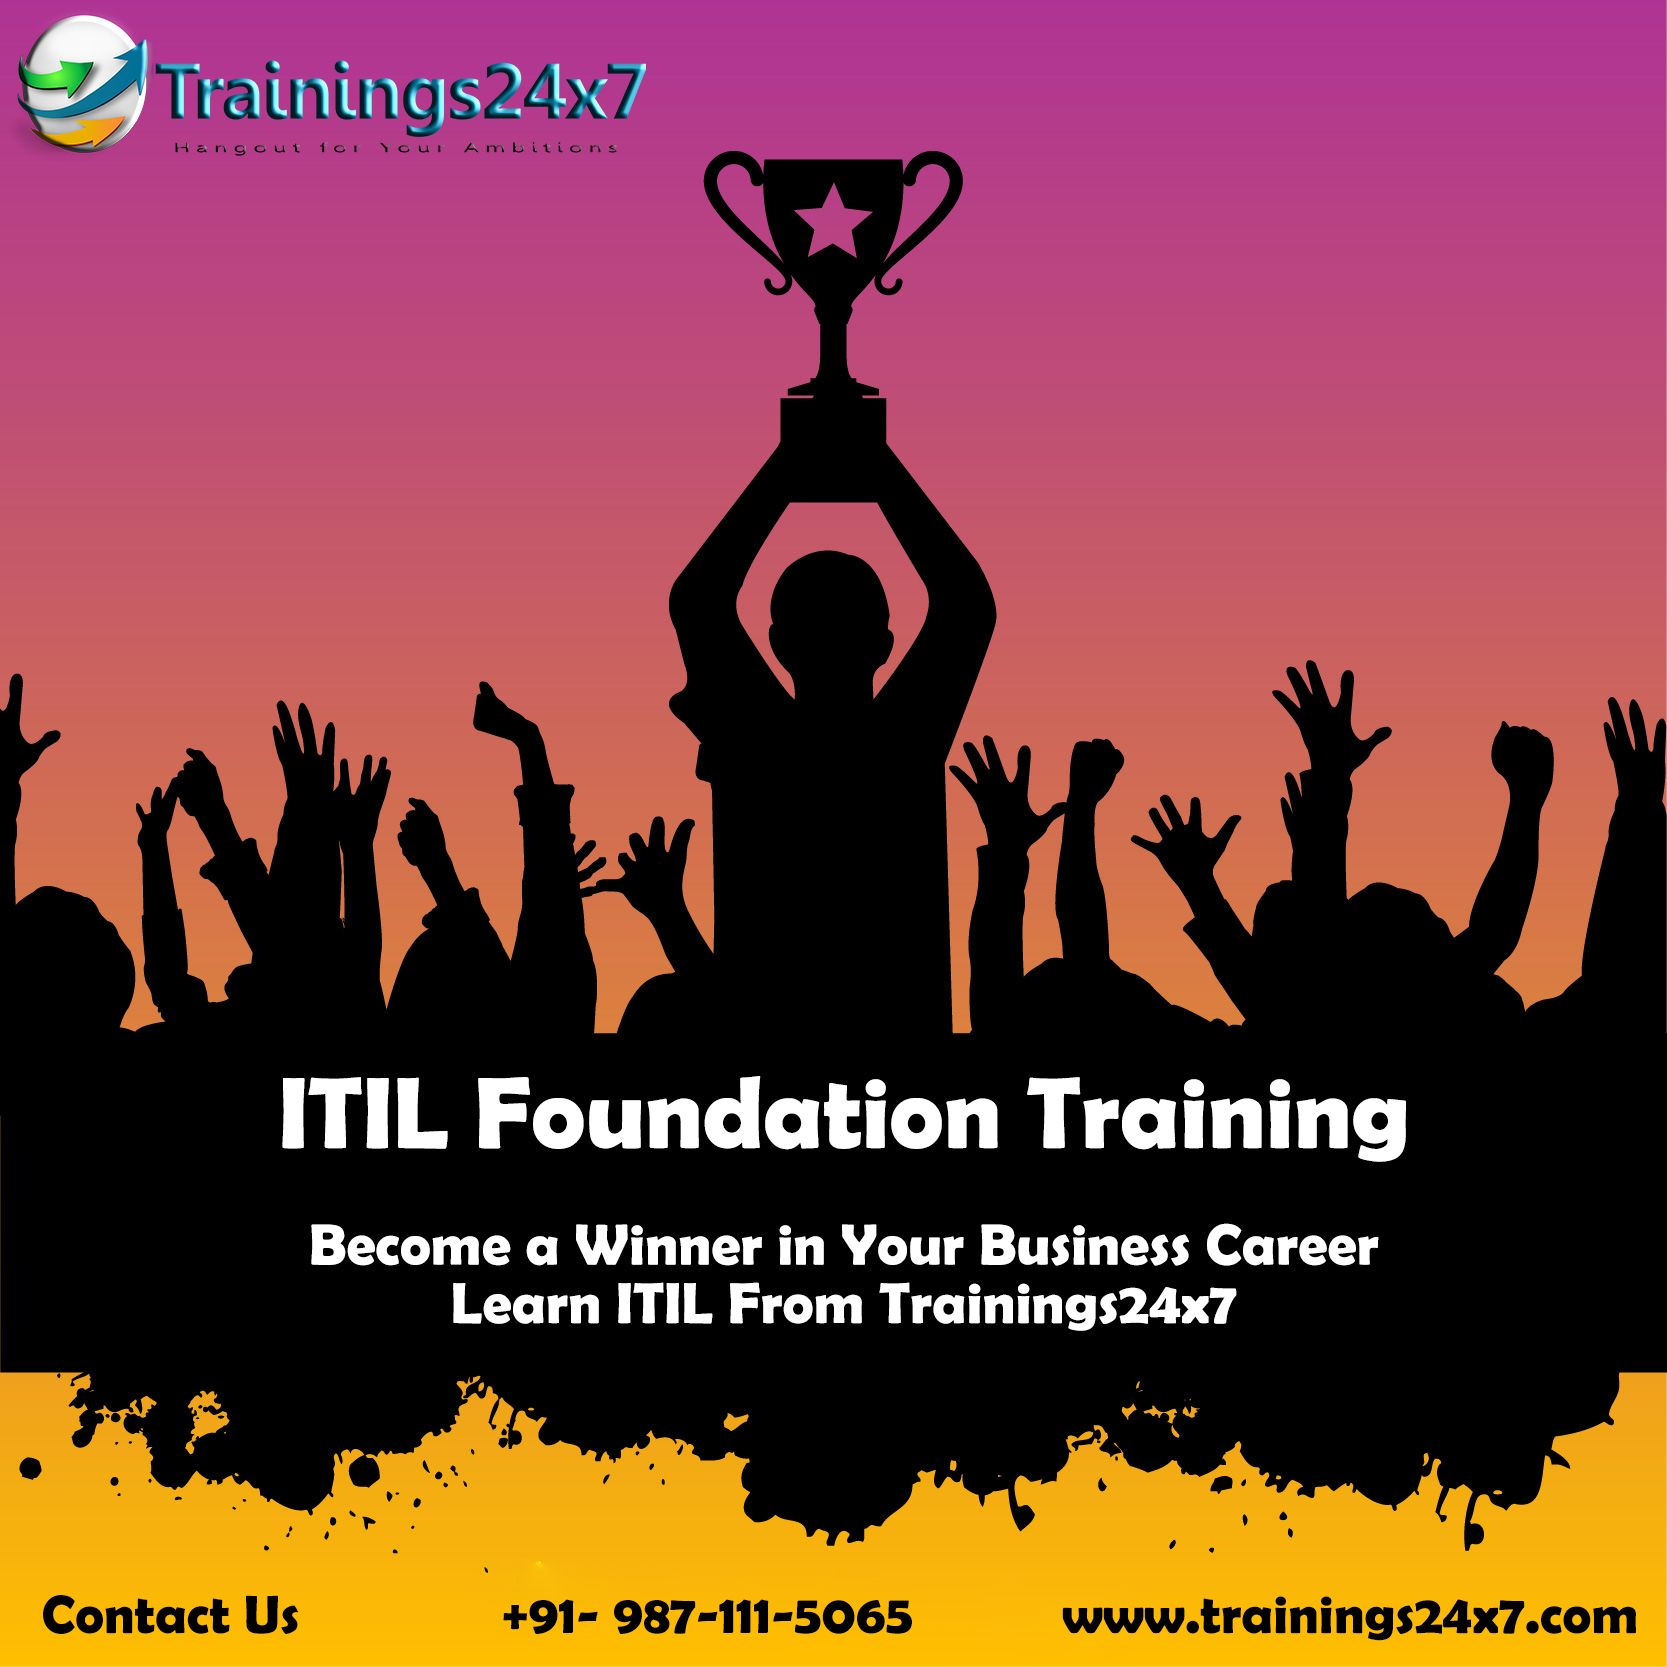 Itil foundation course covers five core disciplines 1 service itil foundation course covers five core disciplines 1 service strategy 2 service 3 1betcityfo Images